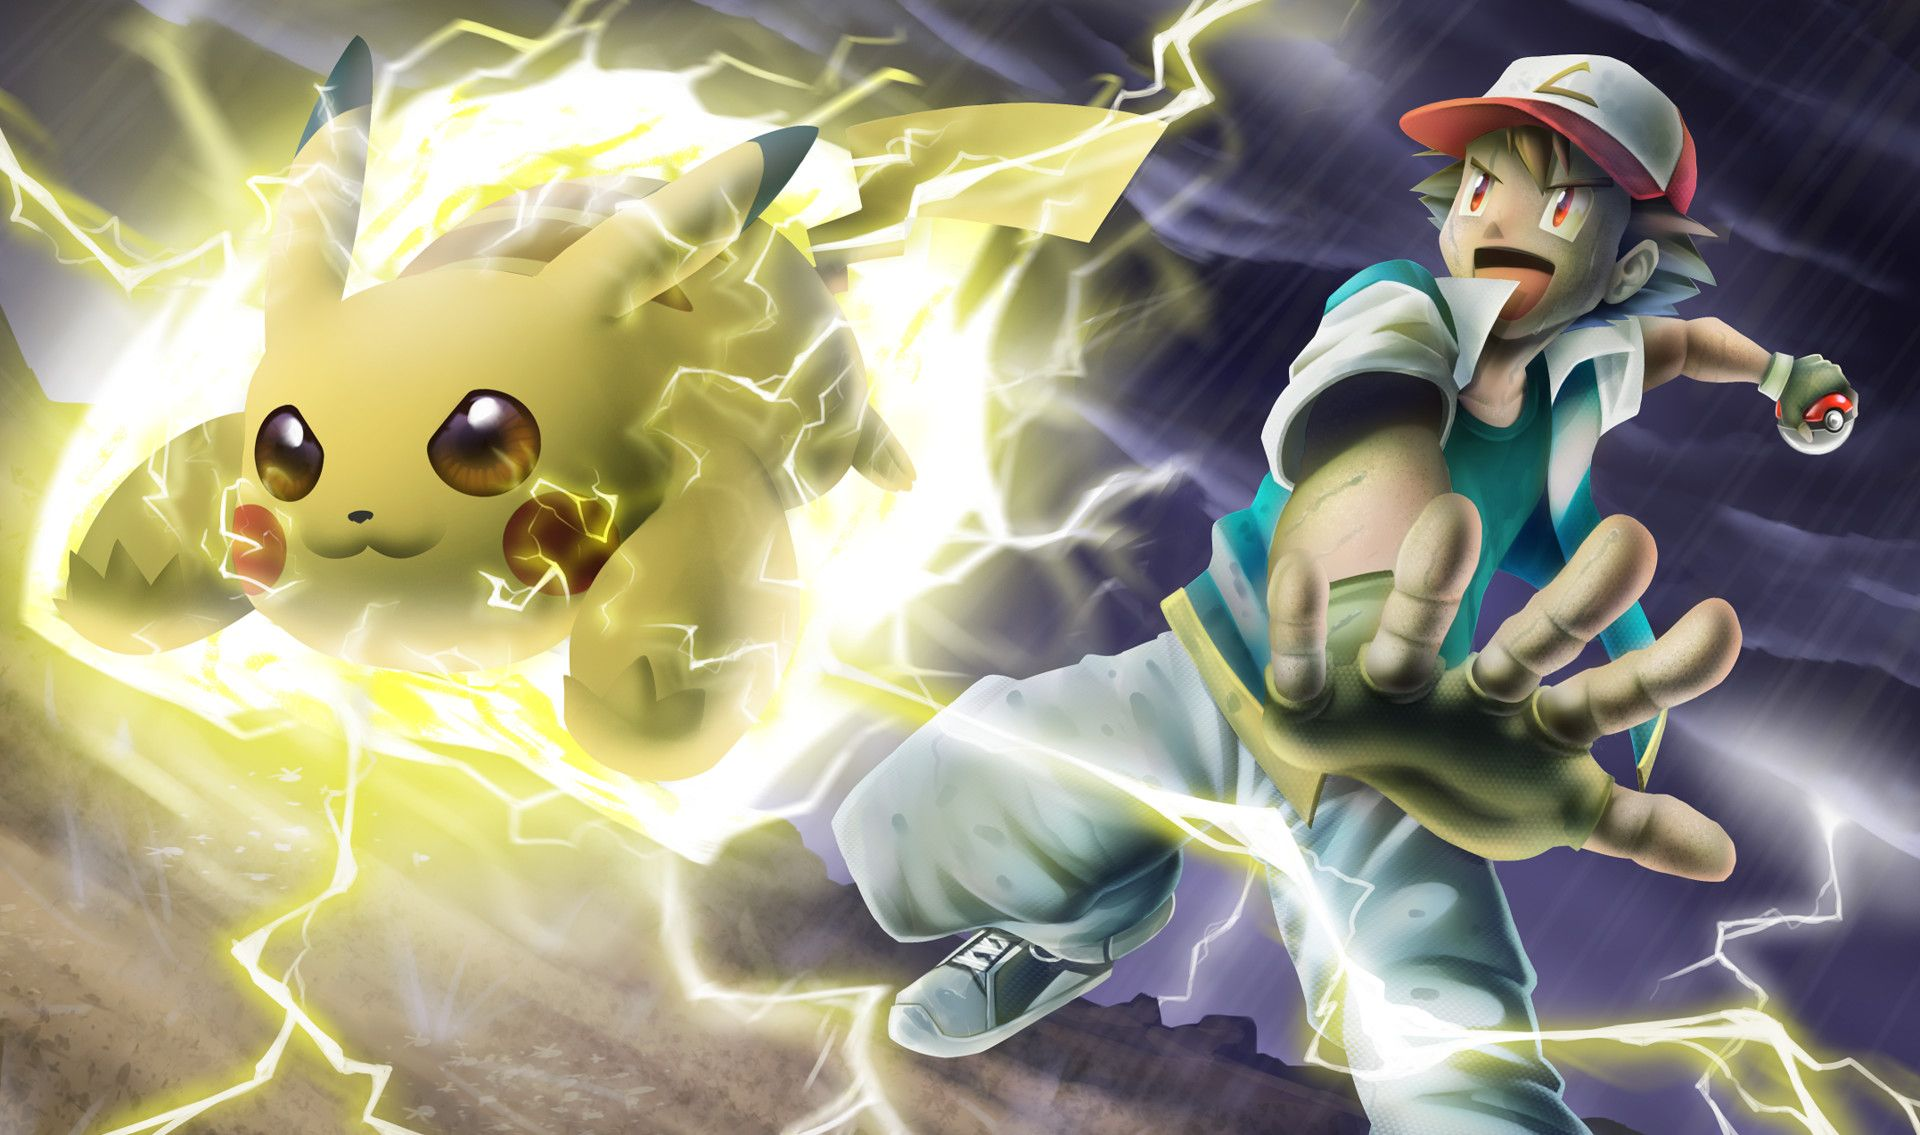 Pikachu's Amazing Volt Tackle by Luis Fernando